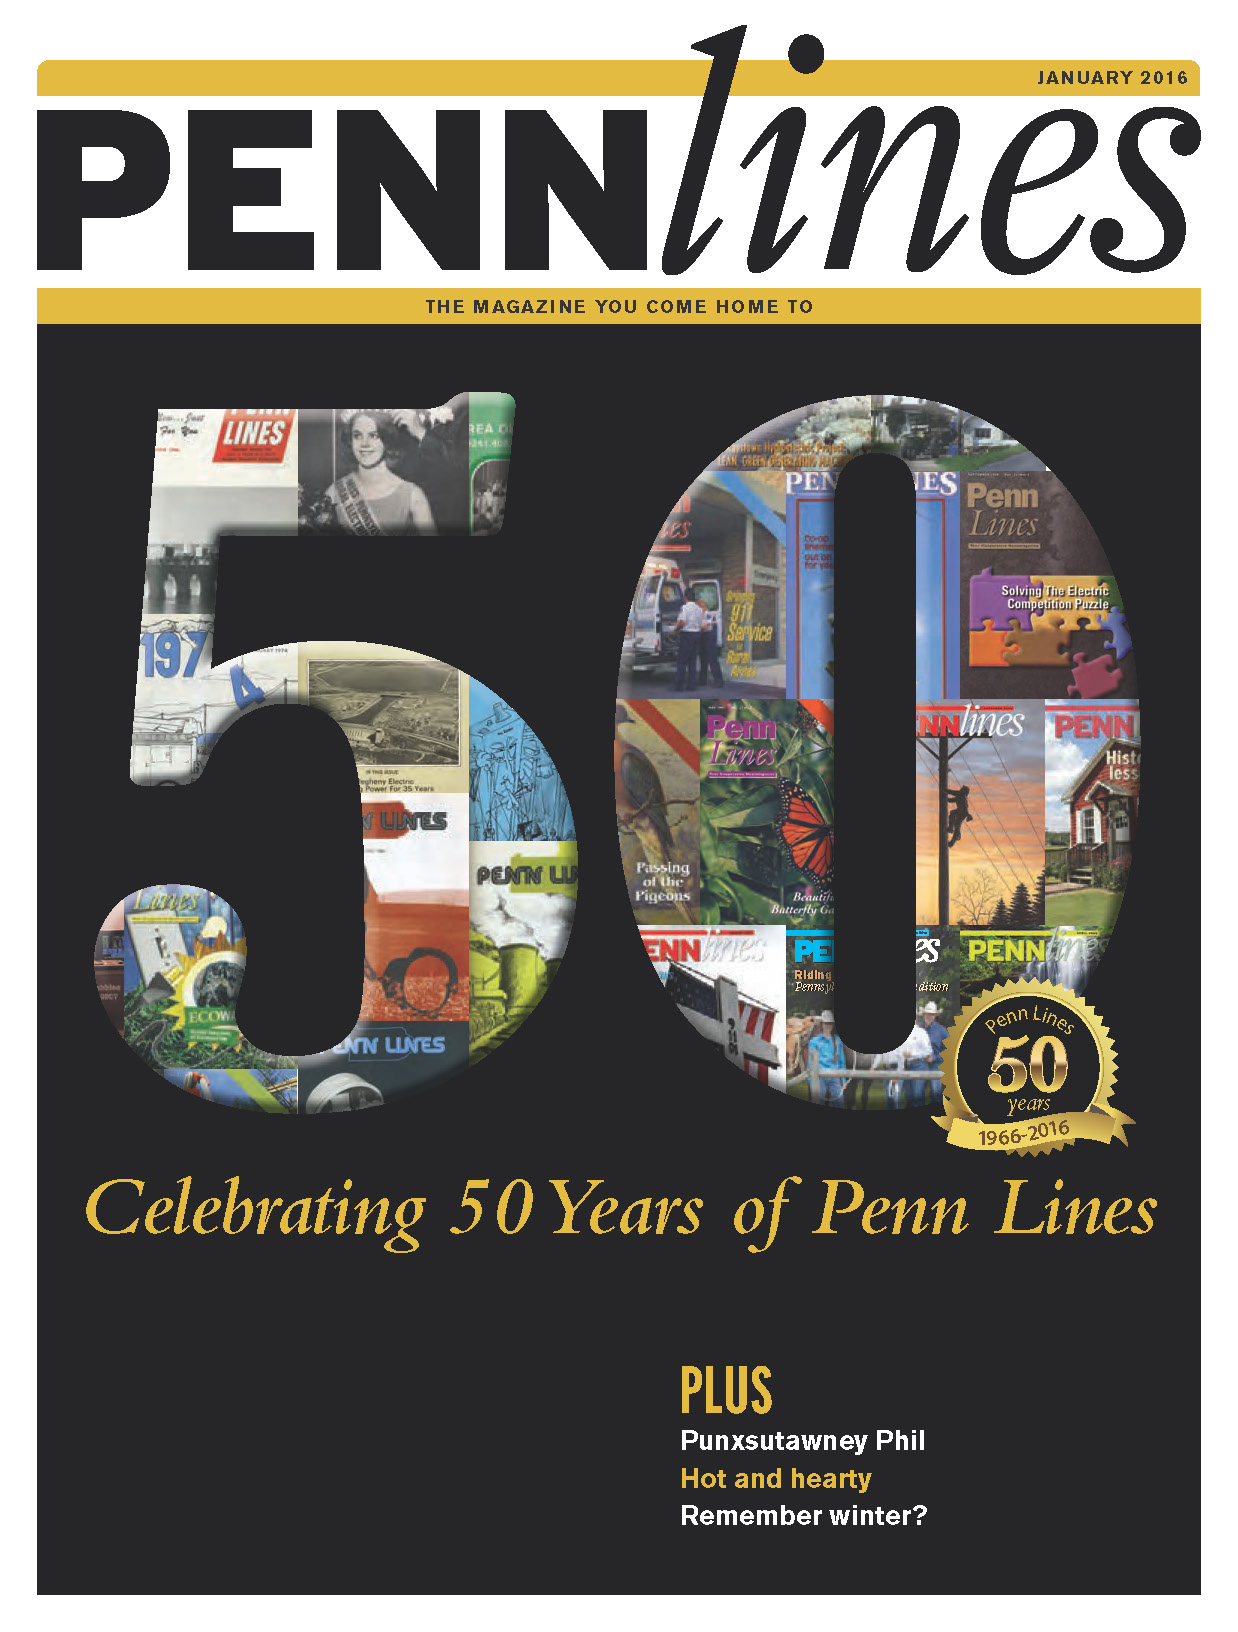 50th Anniversary Penn Lines magazine cover